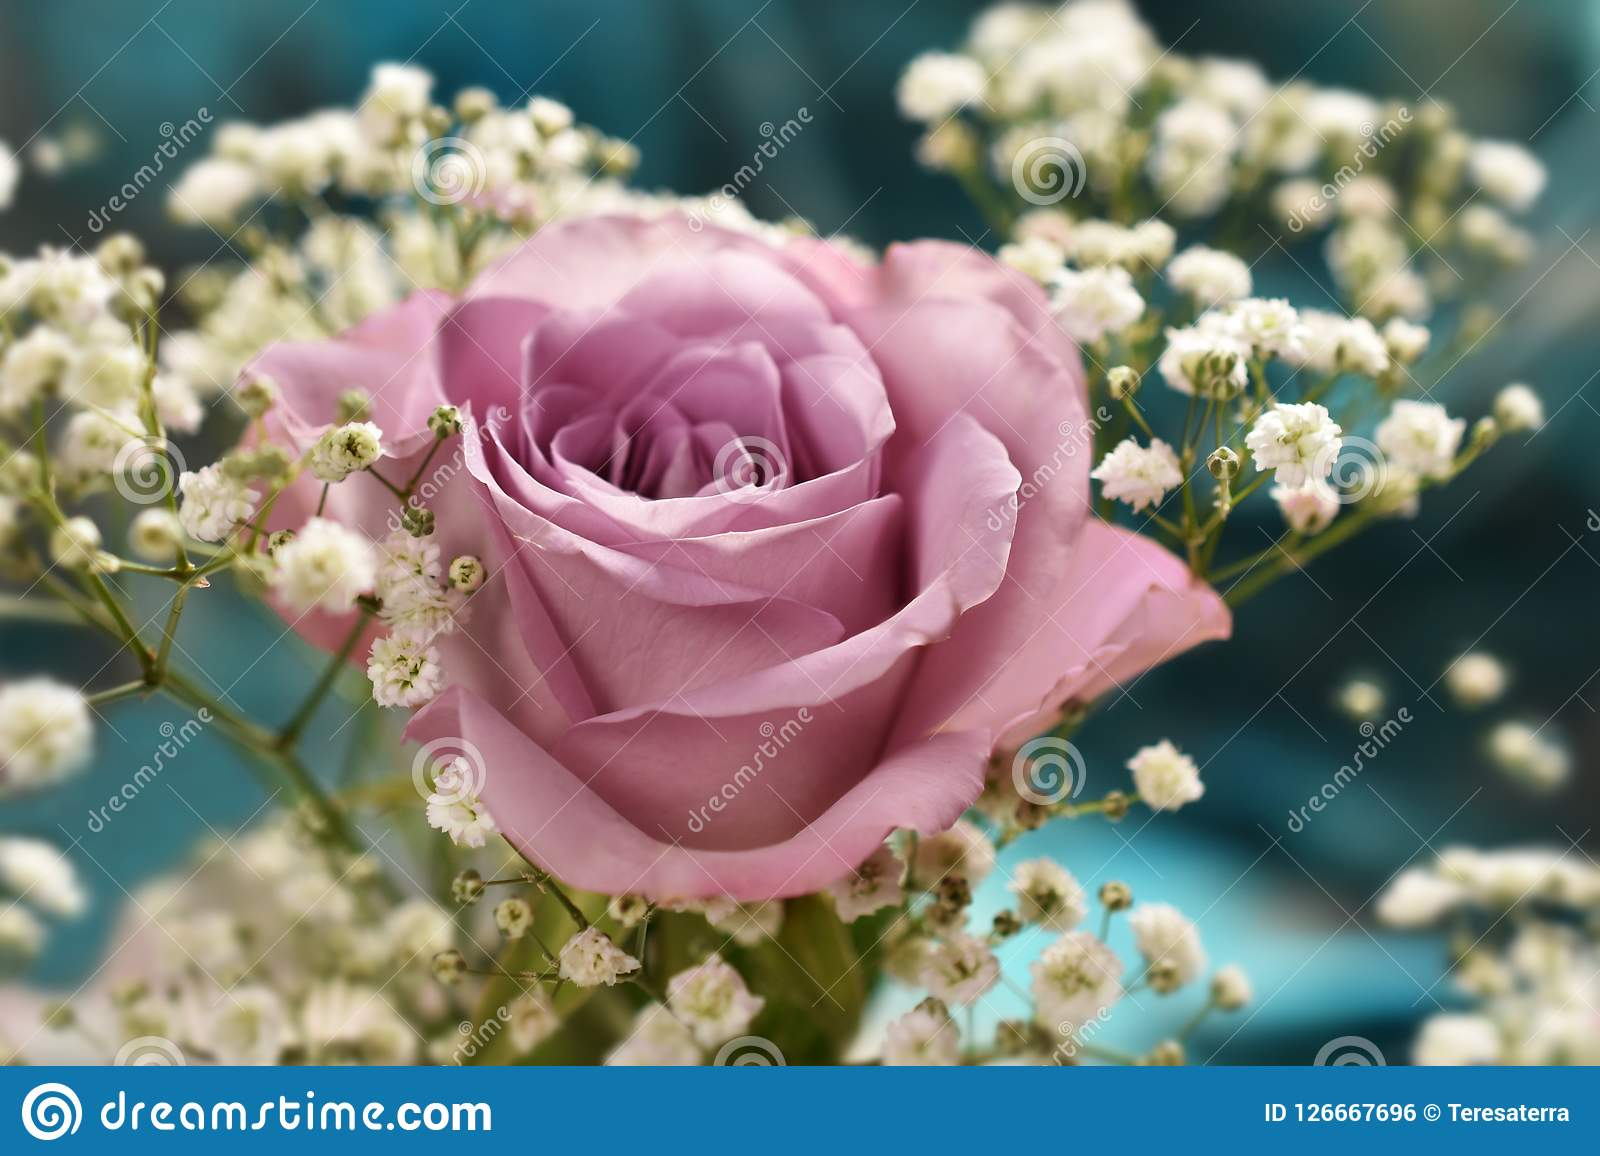 Beautiful lavender color rose with gypsophilla